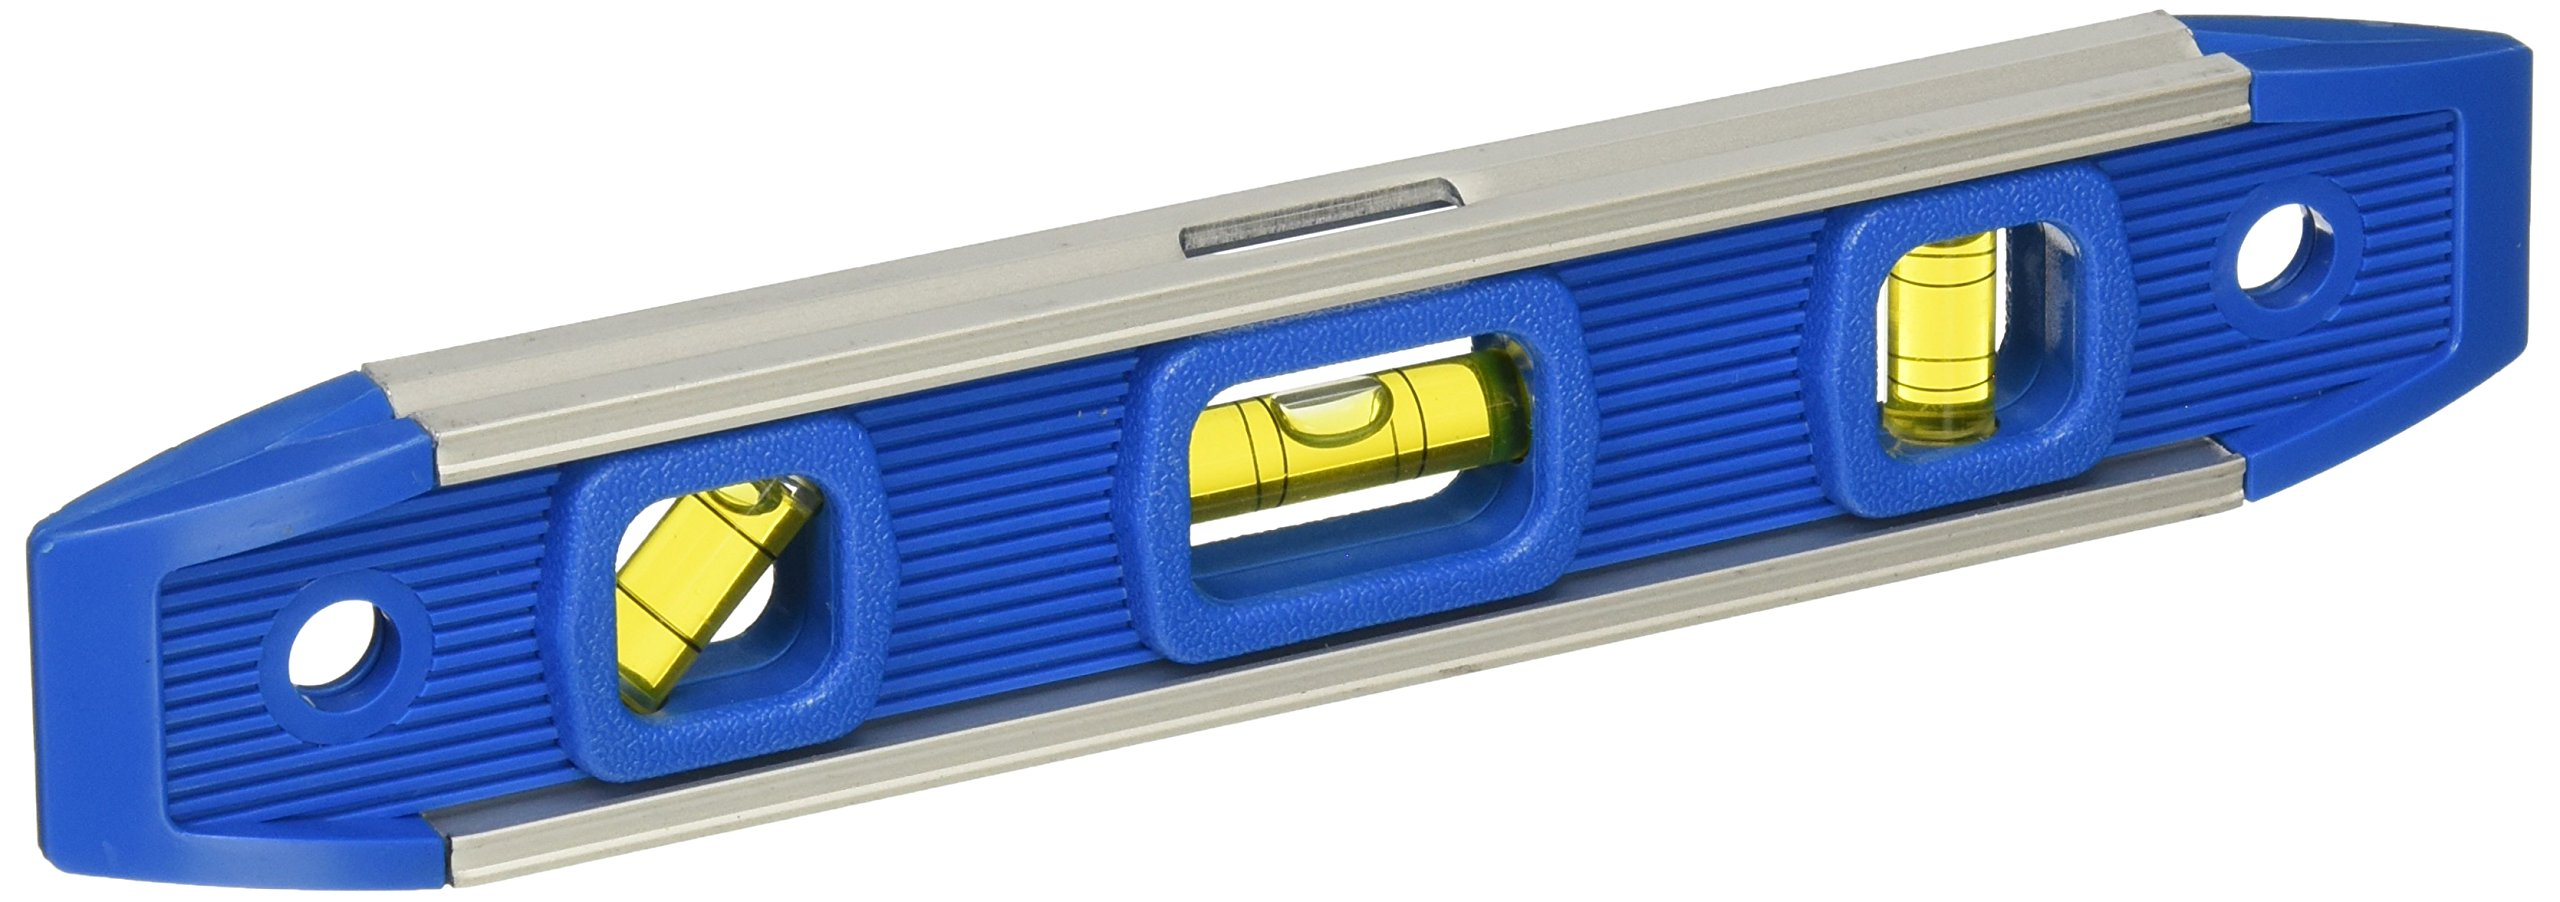 Empire 587-24 Torpedo Level, 9''